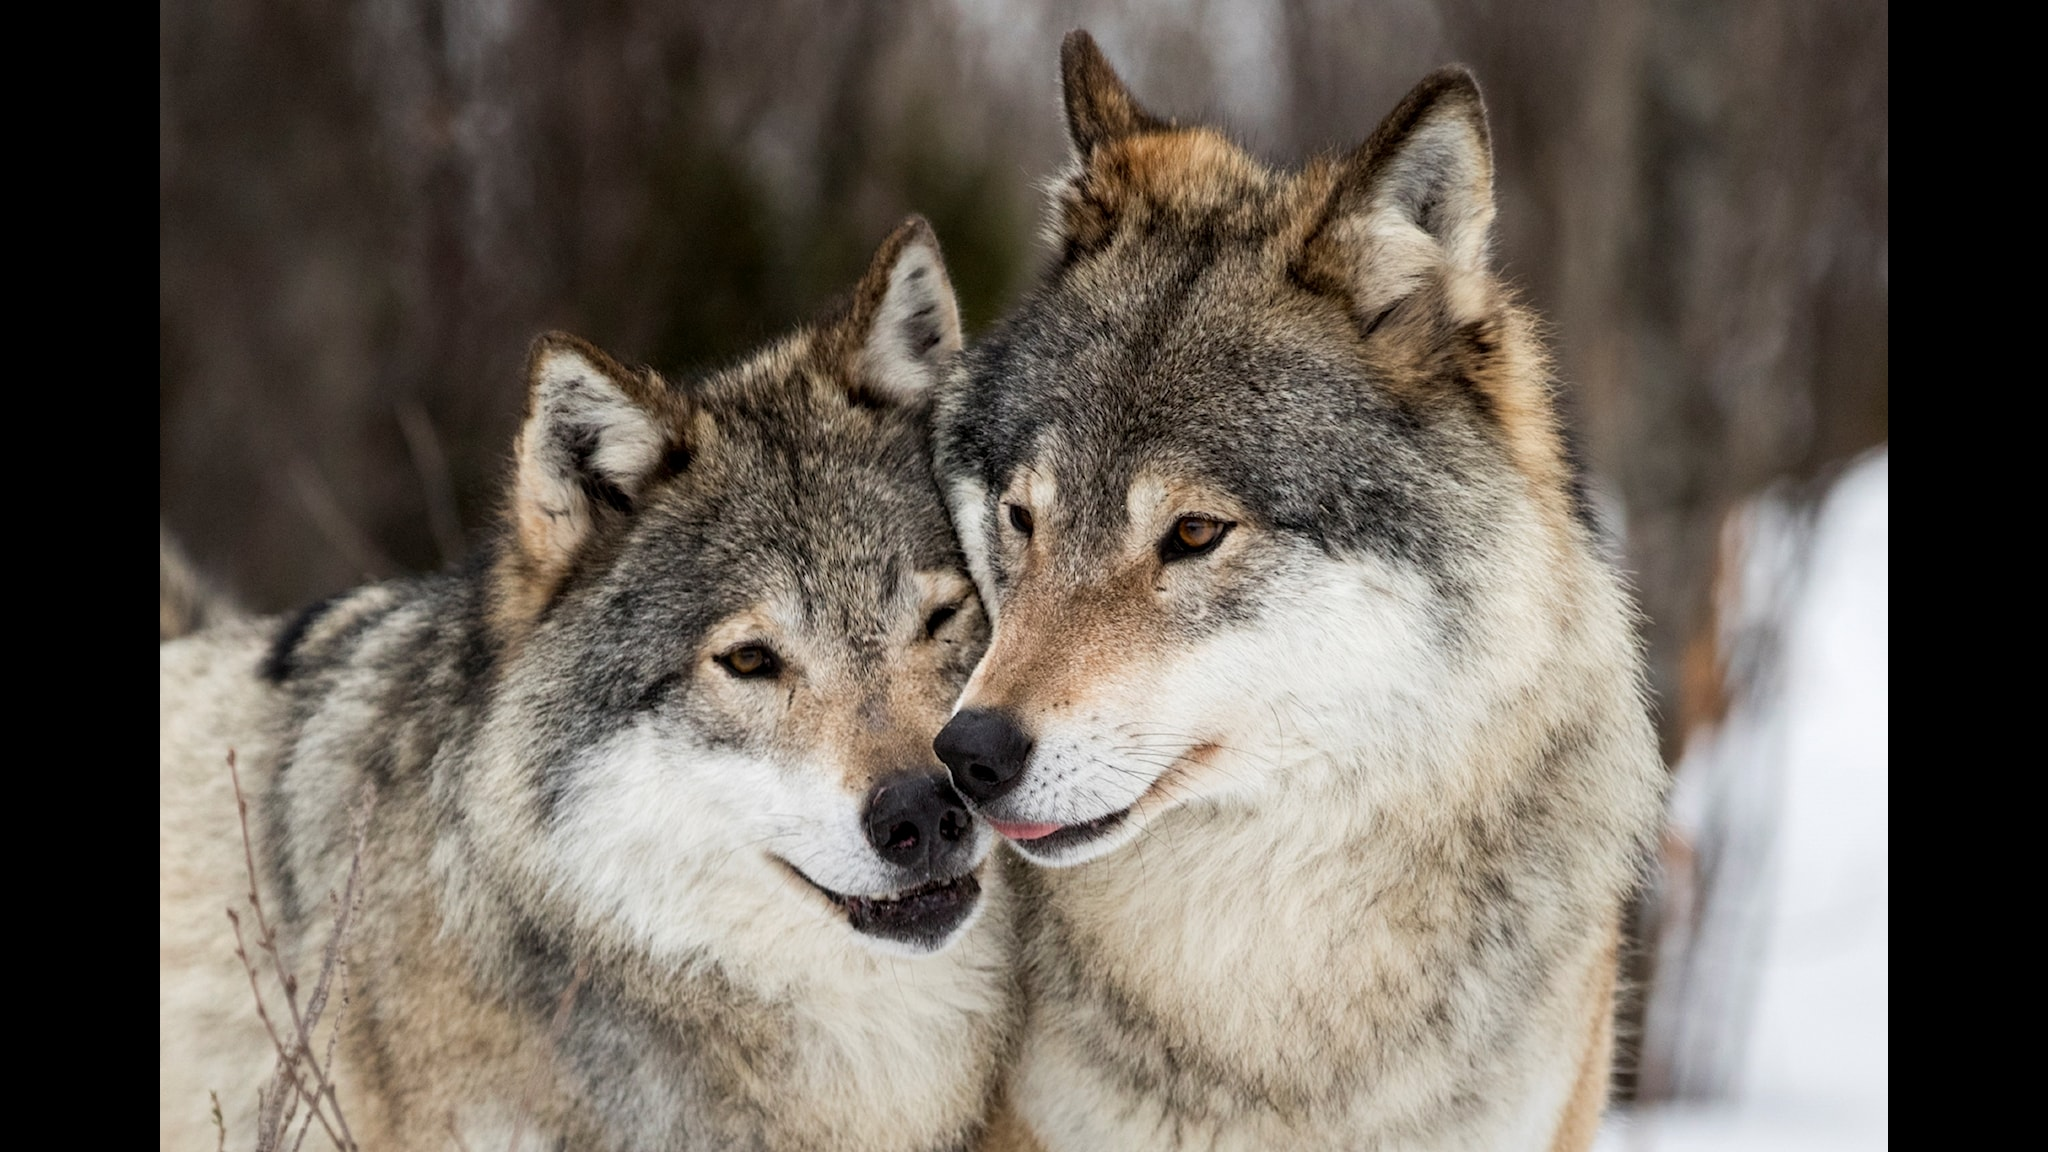 Officials suspect illegal poaching behind lower wolf numbers - Radio Sweden